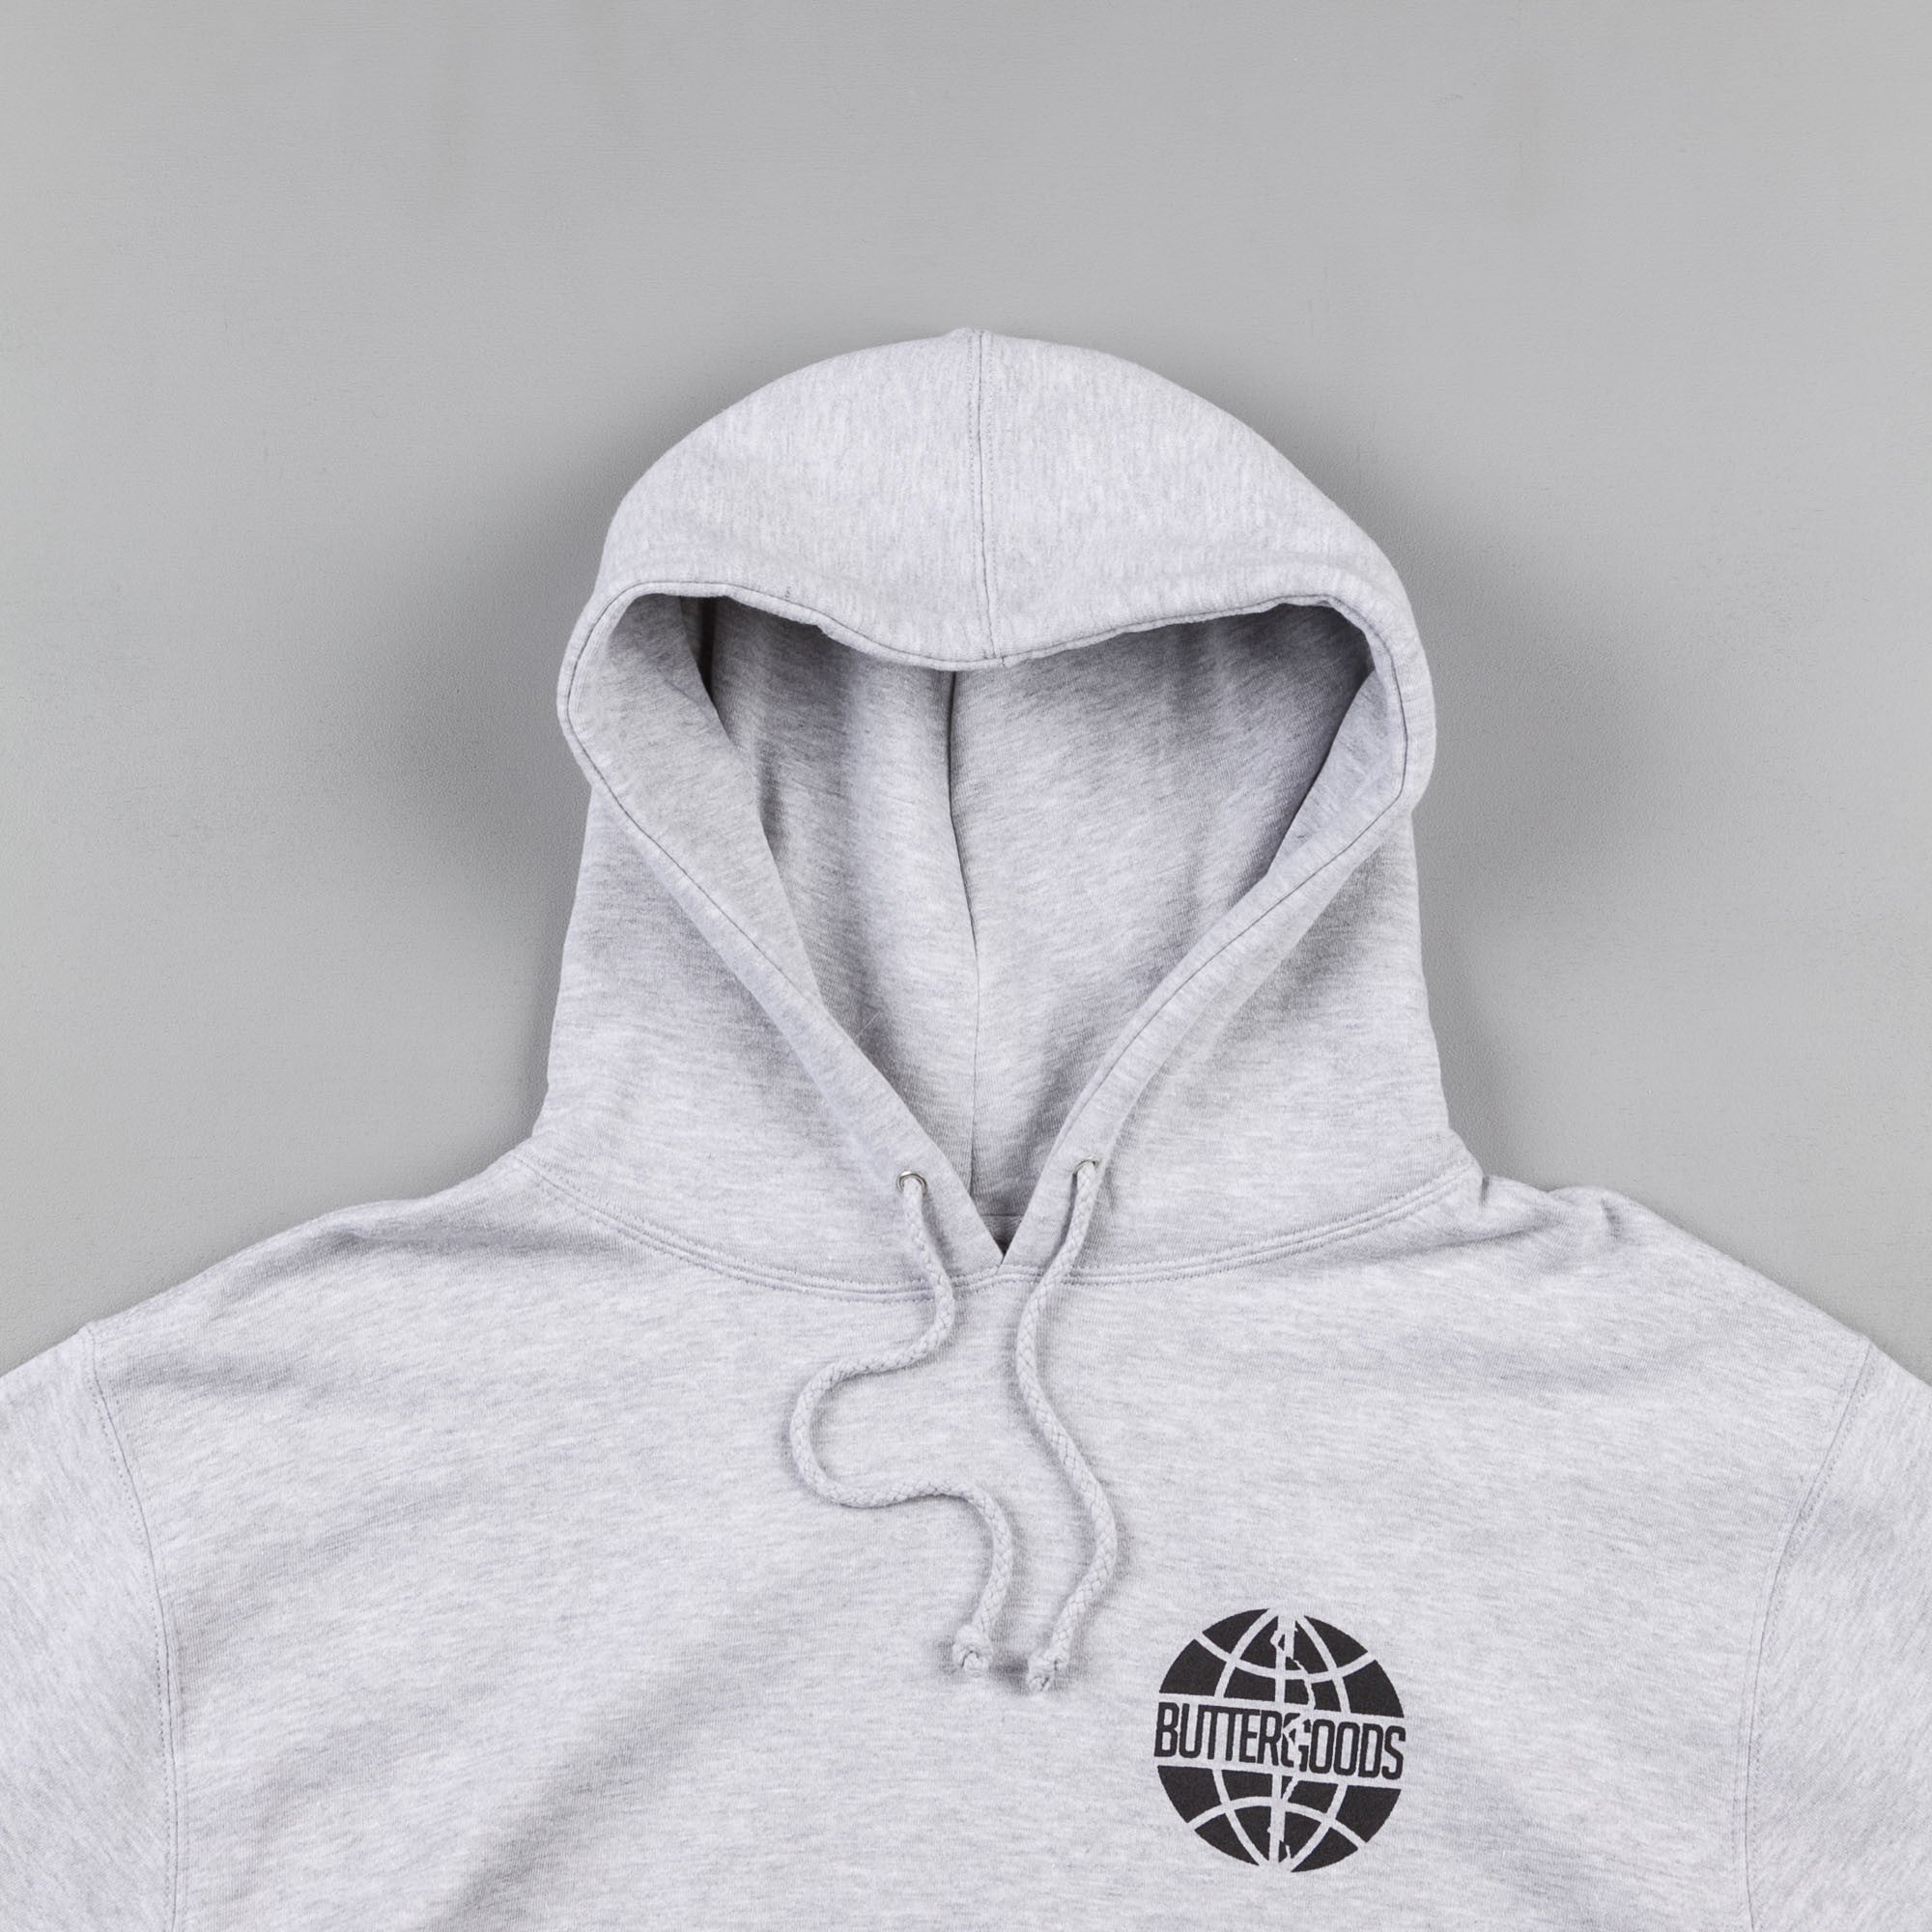 Butter Goods Scan Worldwide Logo Hooded Sweatshirt - Heather Grey